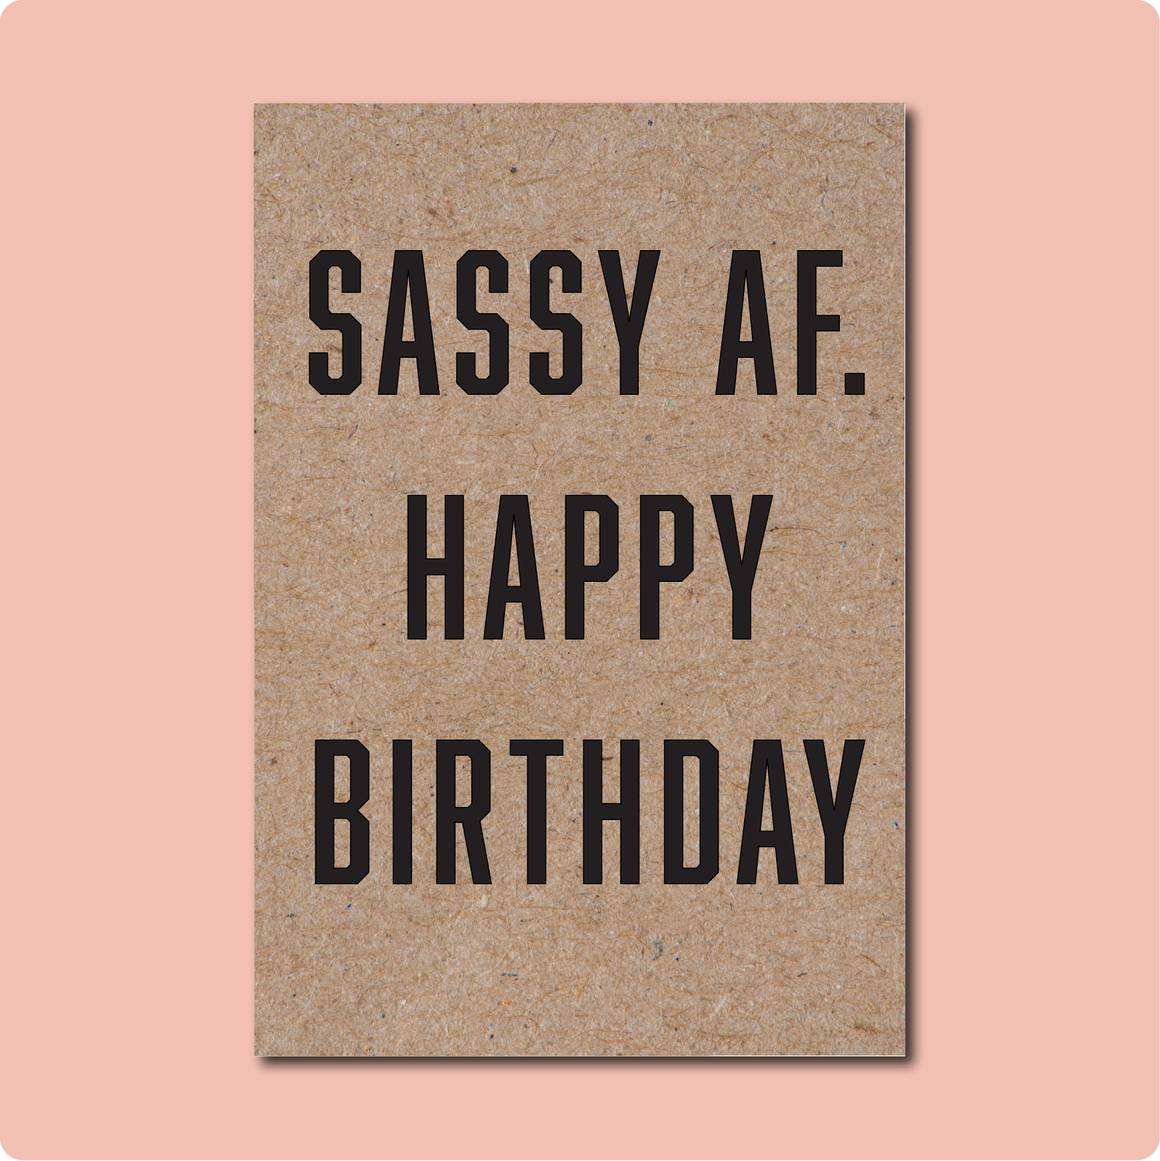 SASSY AF. HAPPY BIRTHDAY CARD | LGBTQ GAY LESBIAN GREETING CARD